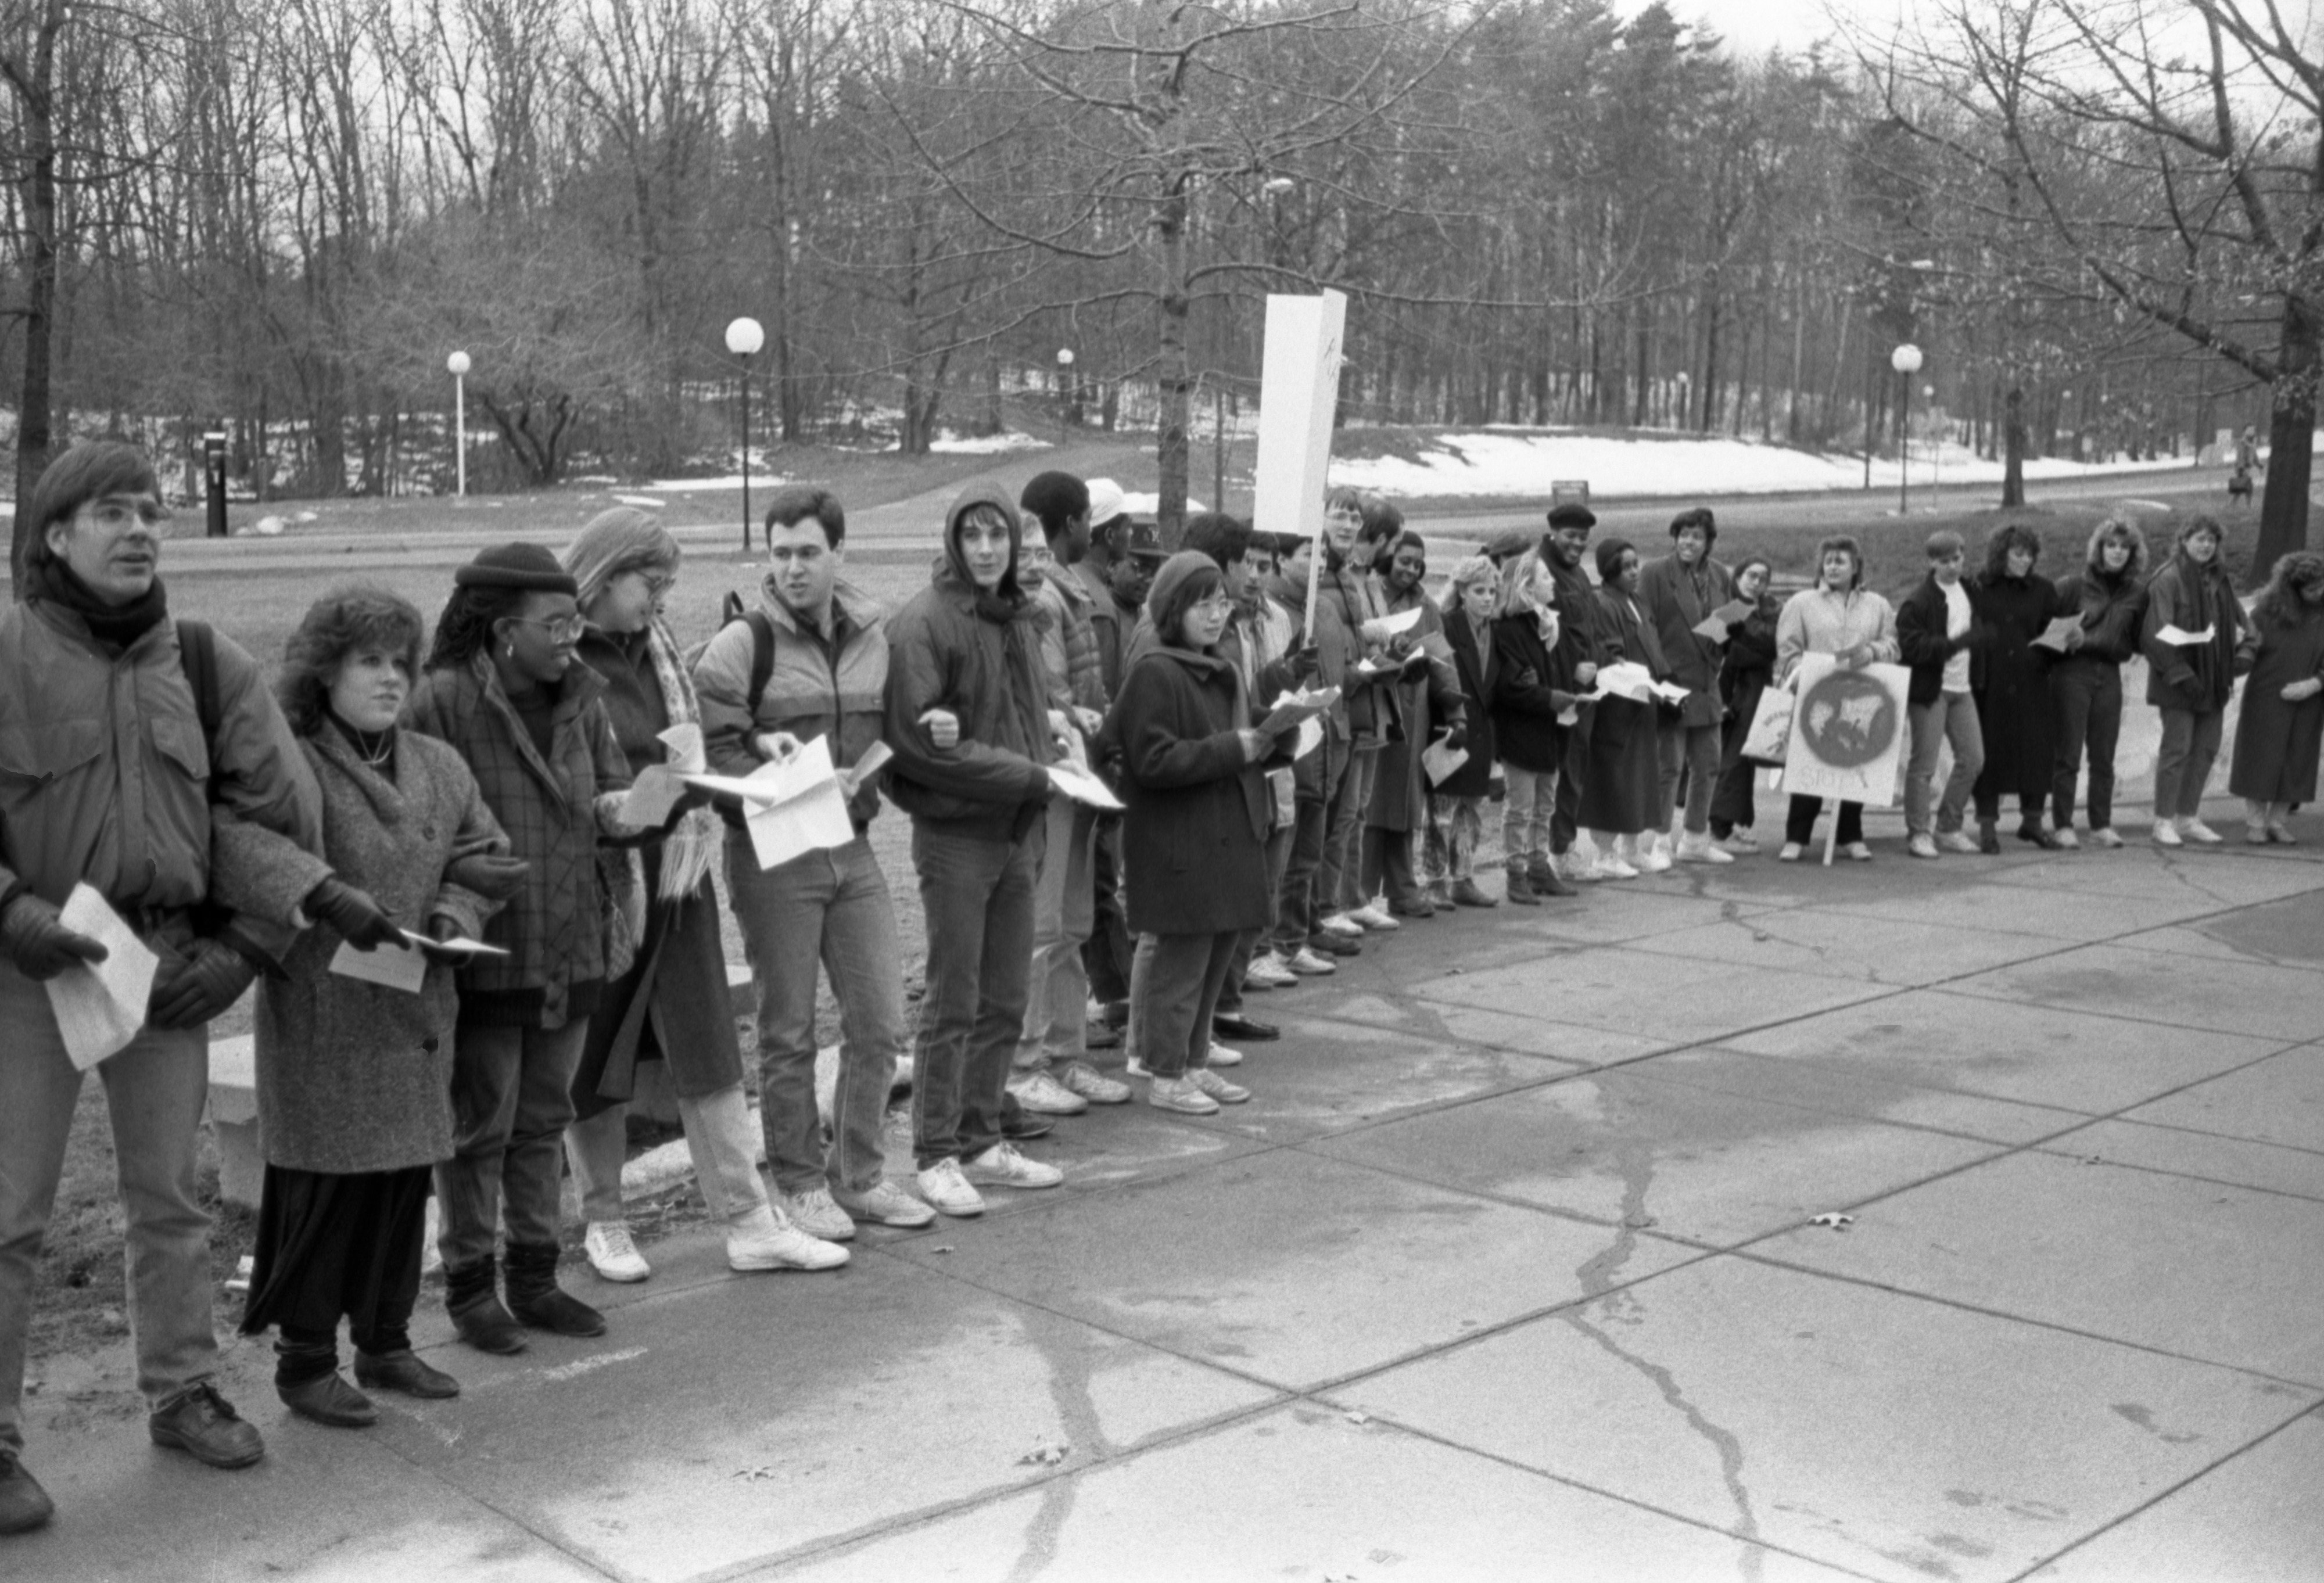 Participants Of U-M Anti-Racism Demonstration At The North Campus Commons, February 13, 1987 image